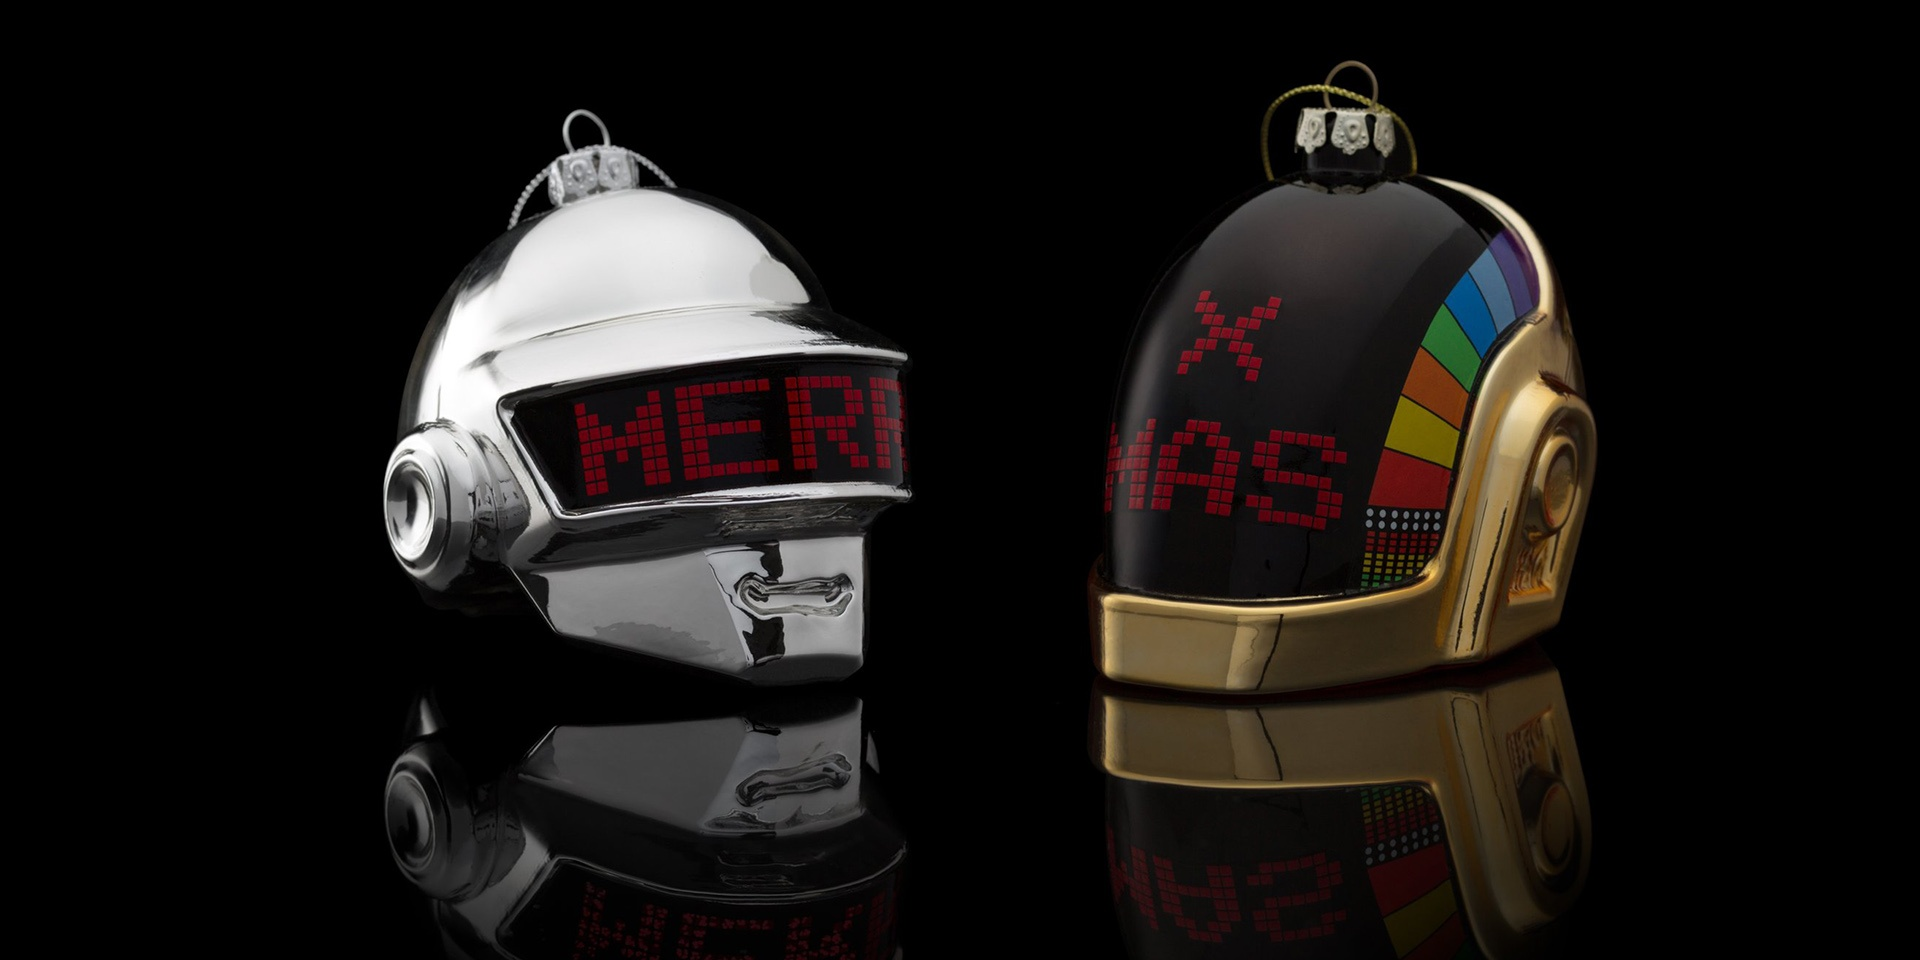 You'll want Daft Punk's holiday merch collection for Christmas